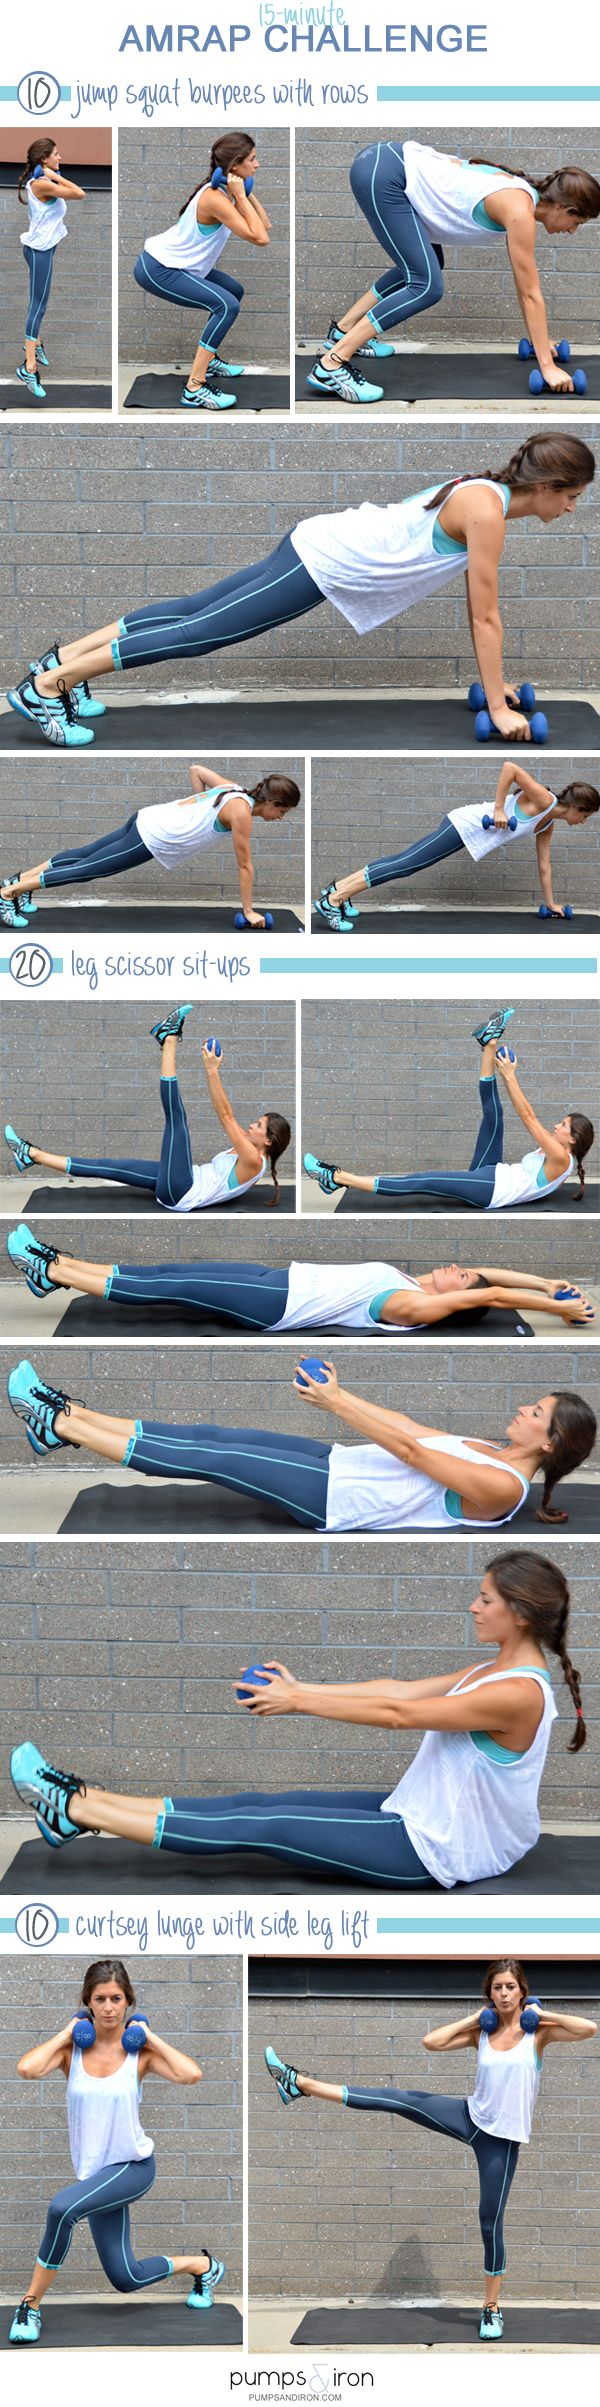 15-Minute AMRAP Workout with hand weights - Looks awesome!